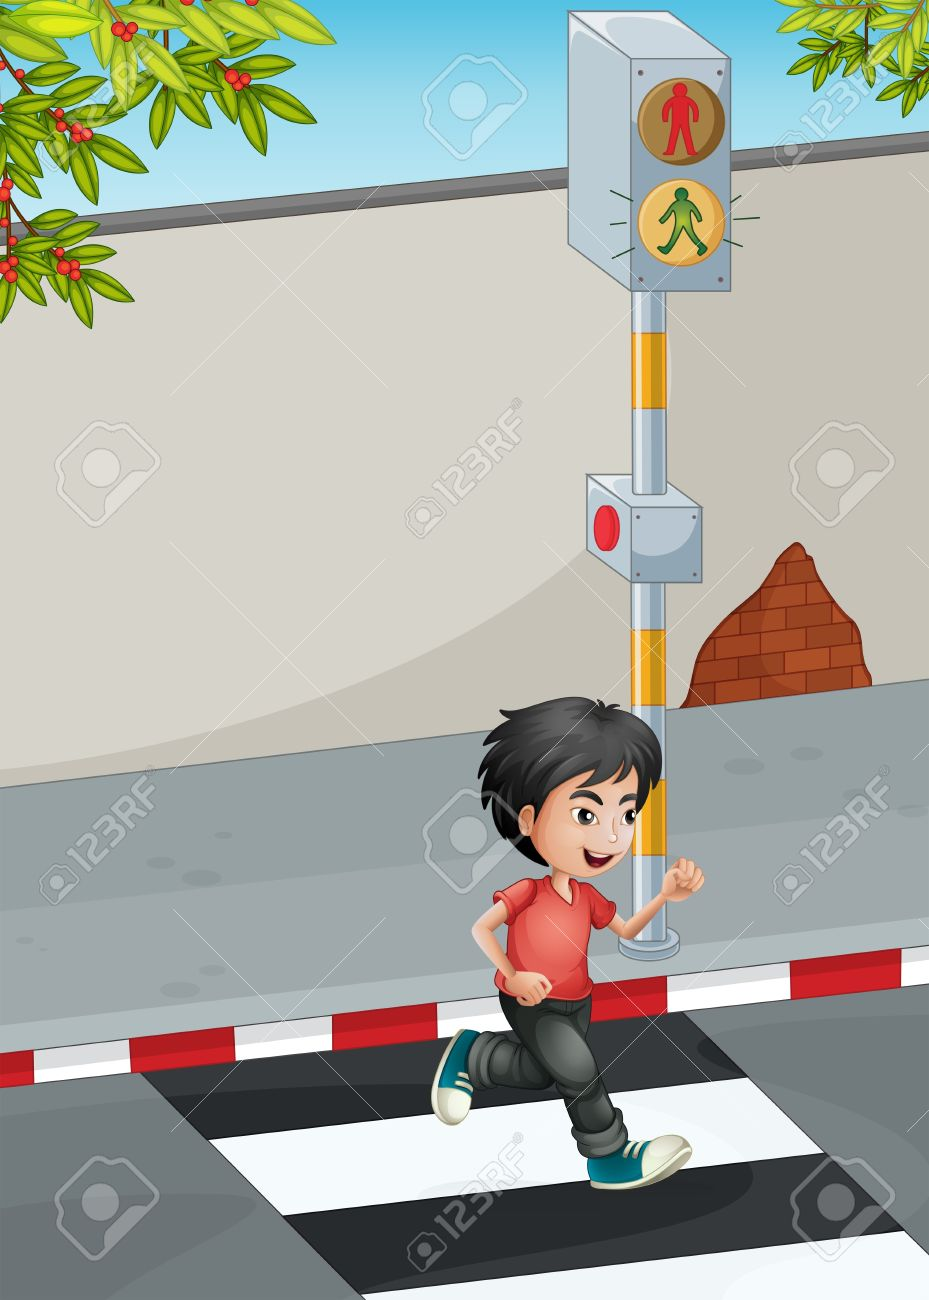 Illustration of a boy running while crossing the street Stock Vector - 21658923